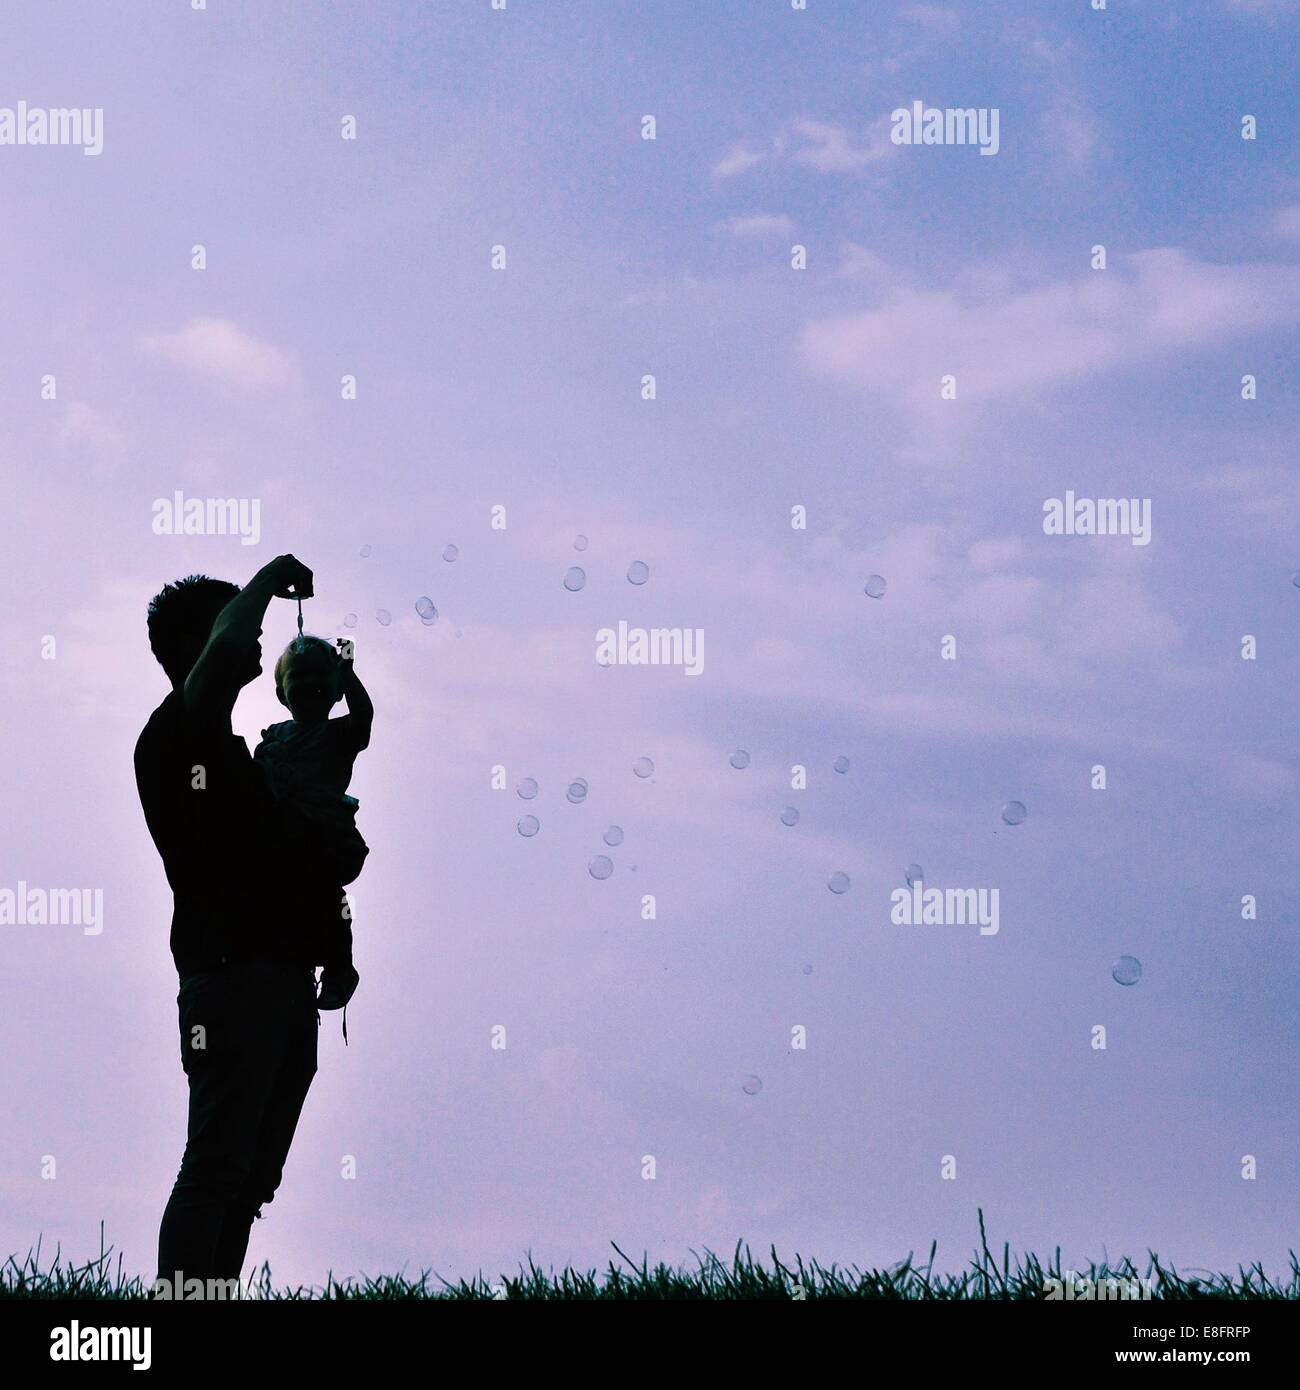 Silhouette of man and child blowing bubbles - Stock Image